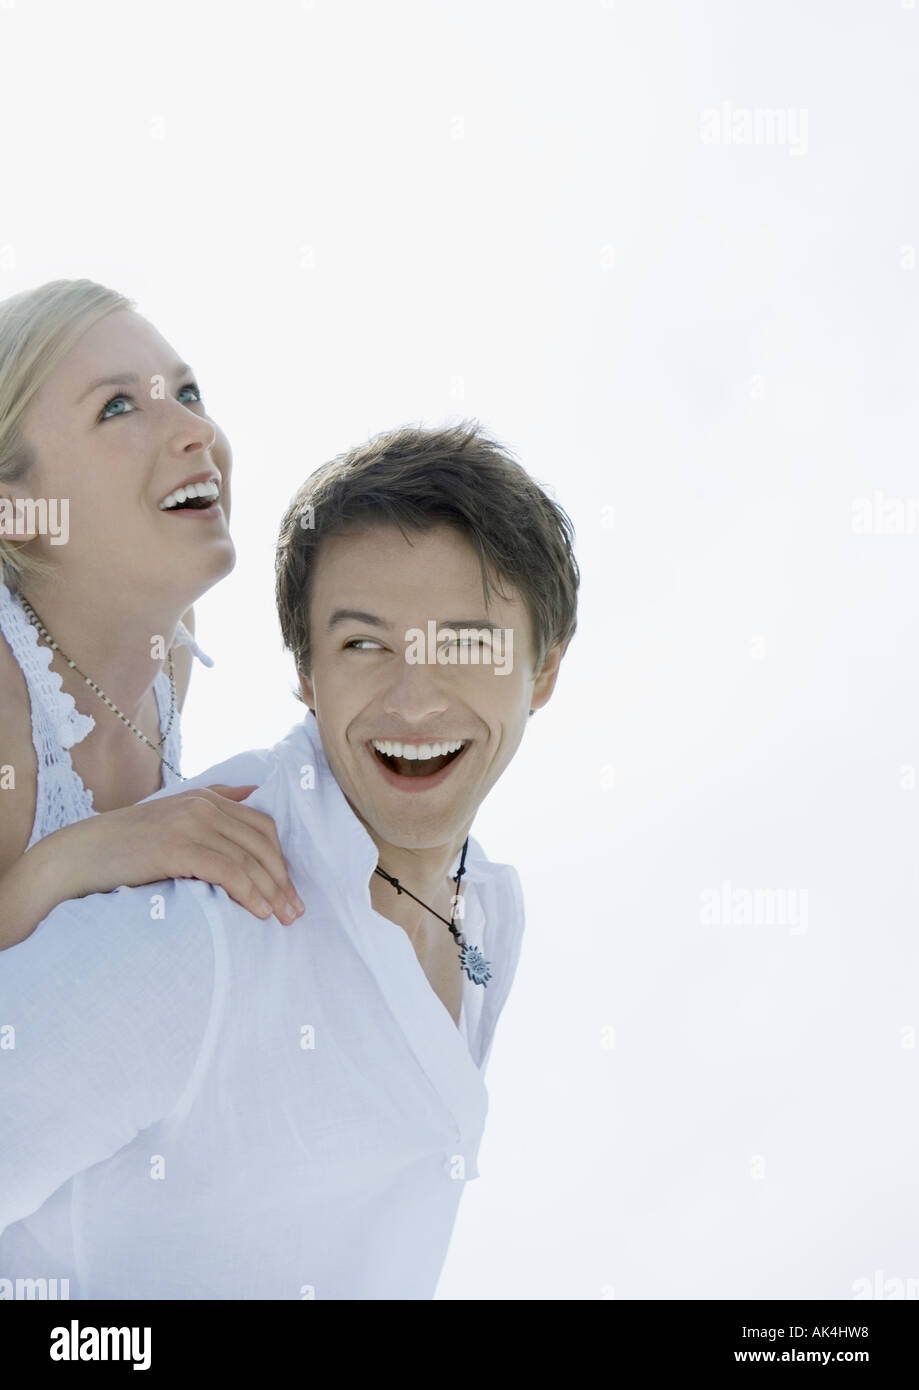 Woman on man's back, both laughing - Stock Image